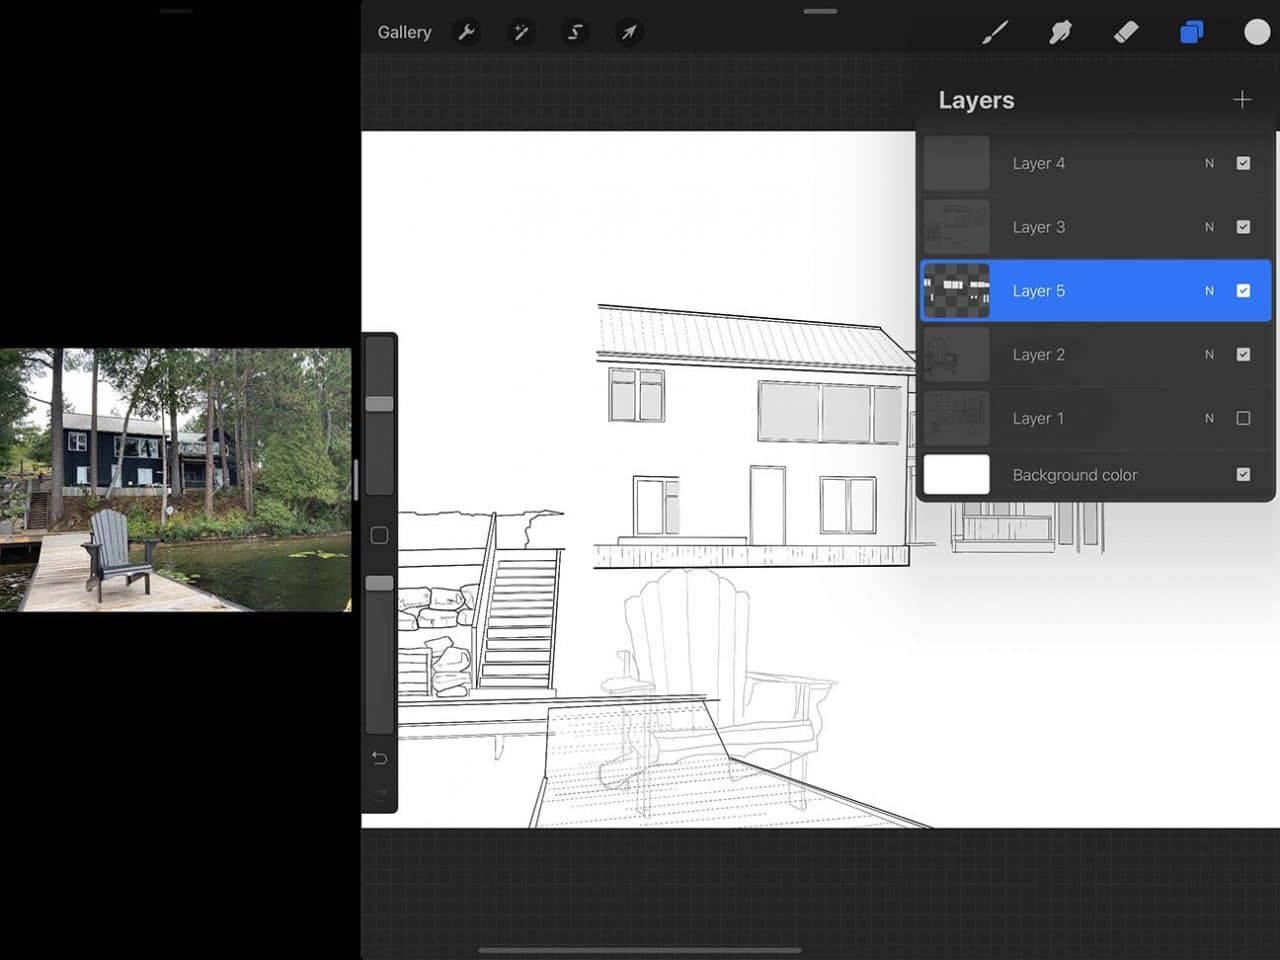 Procreate tutorial: the steps for how to draw a cottage are nearly the same on iPad Pro as they would be on paper